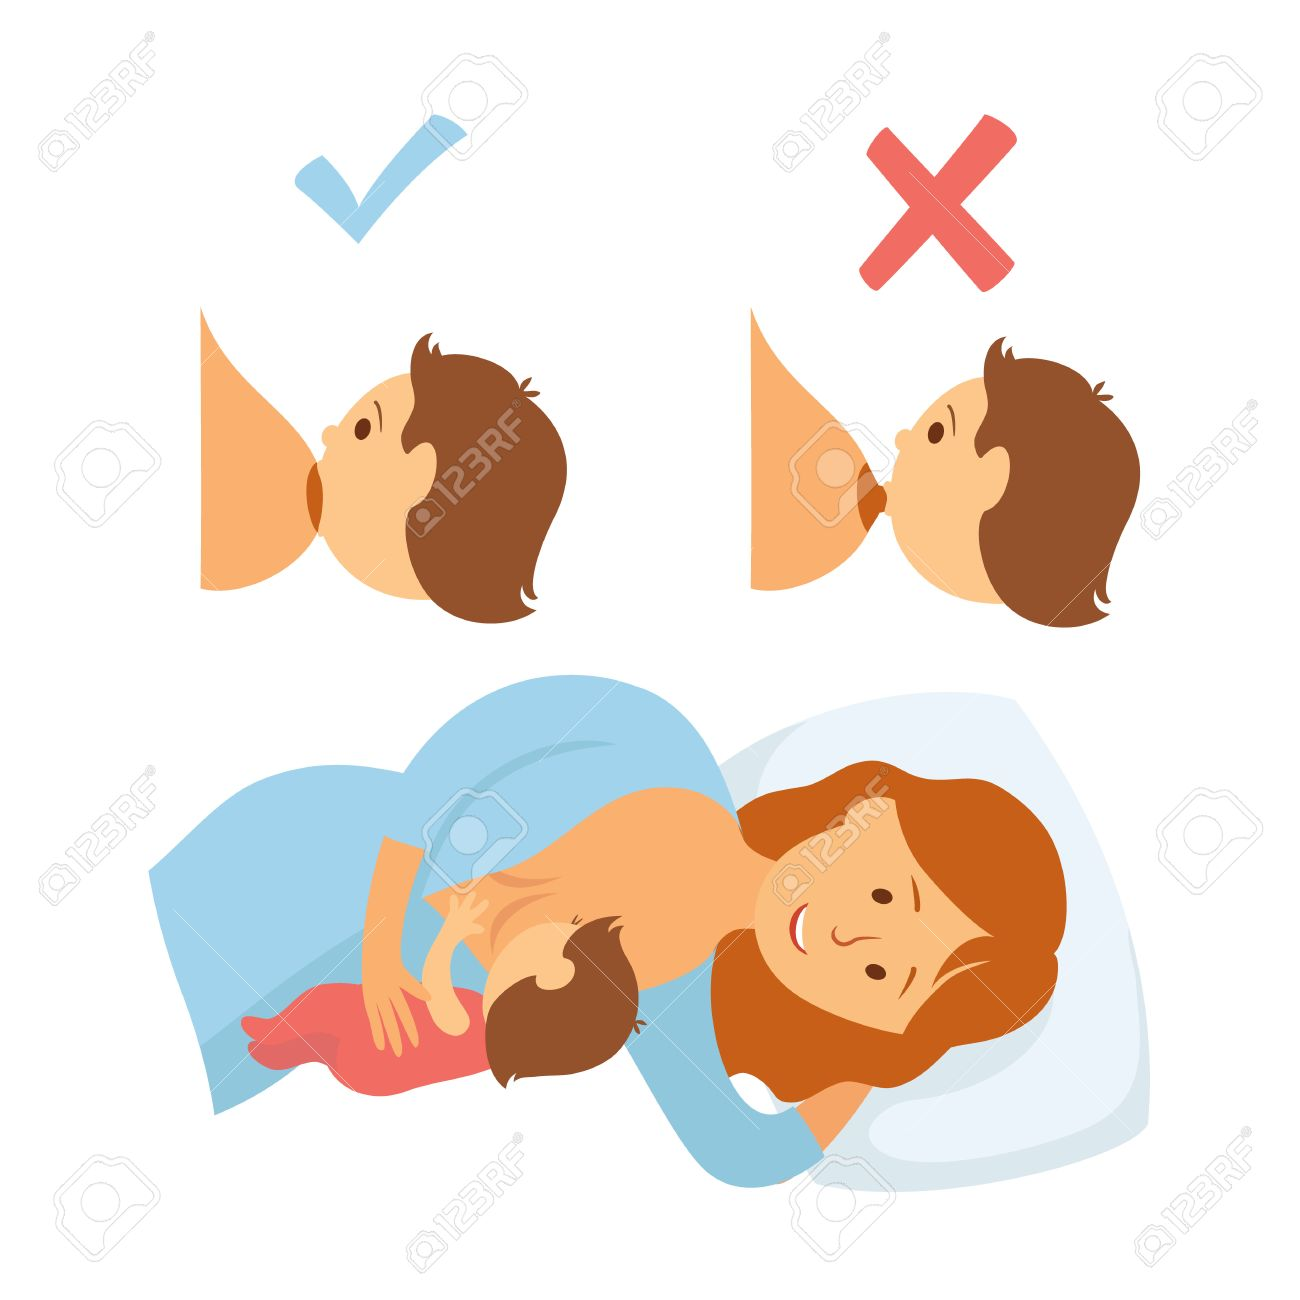 Correct Breastfeeding Position Mother Feeds Baby With Breast Royalty Free Cliparts Vectors And Stock Illustration Image 54930838